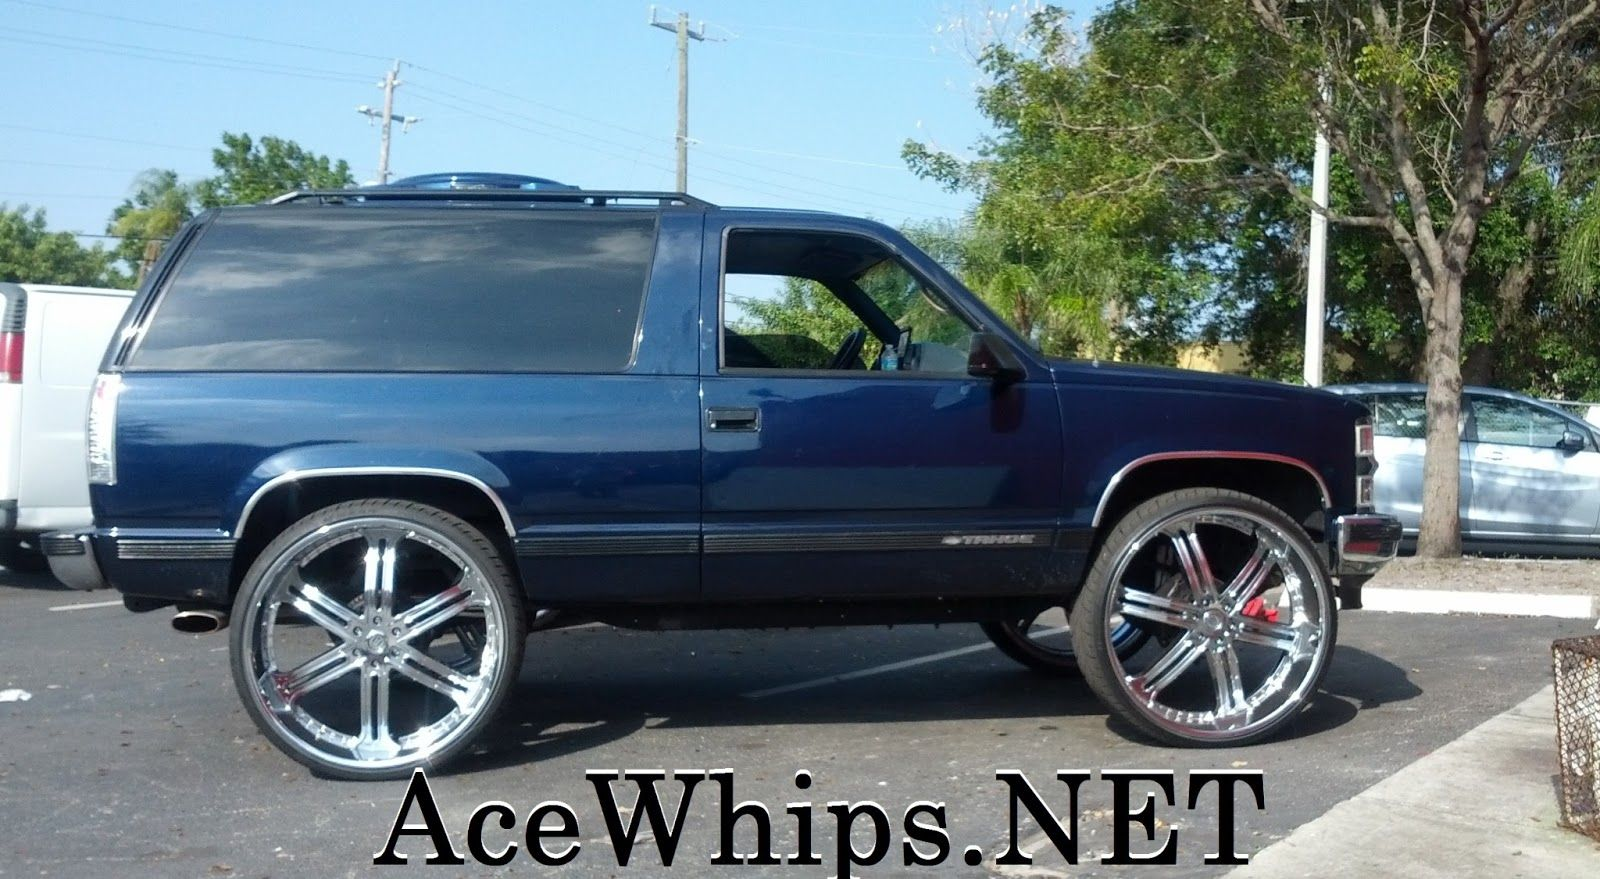 30 inch rims on impala ace 1 wtw customs 2dr chevy tahoe on 30 versante rims [ 1600 x 879 Pixel ]